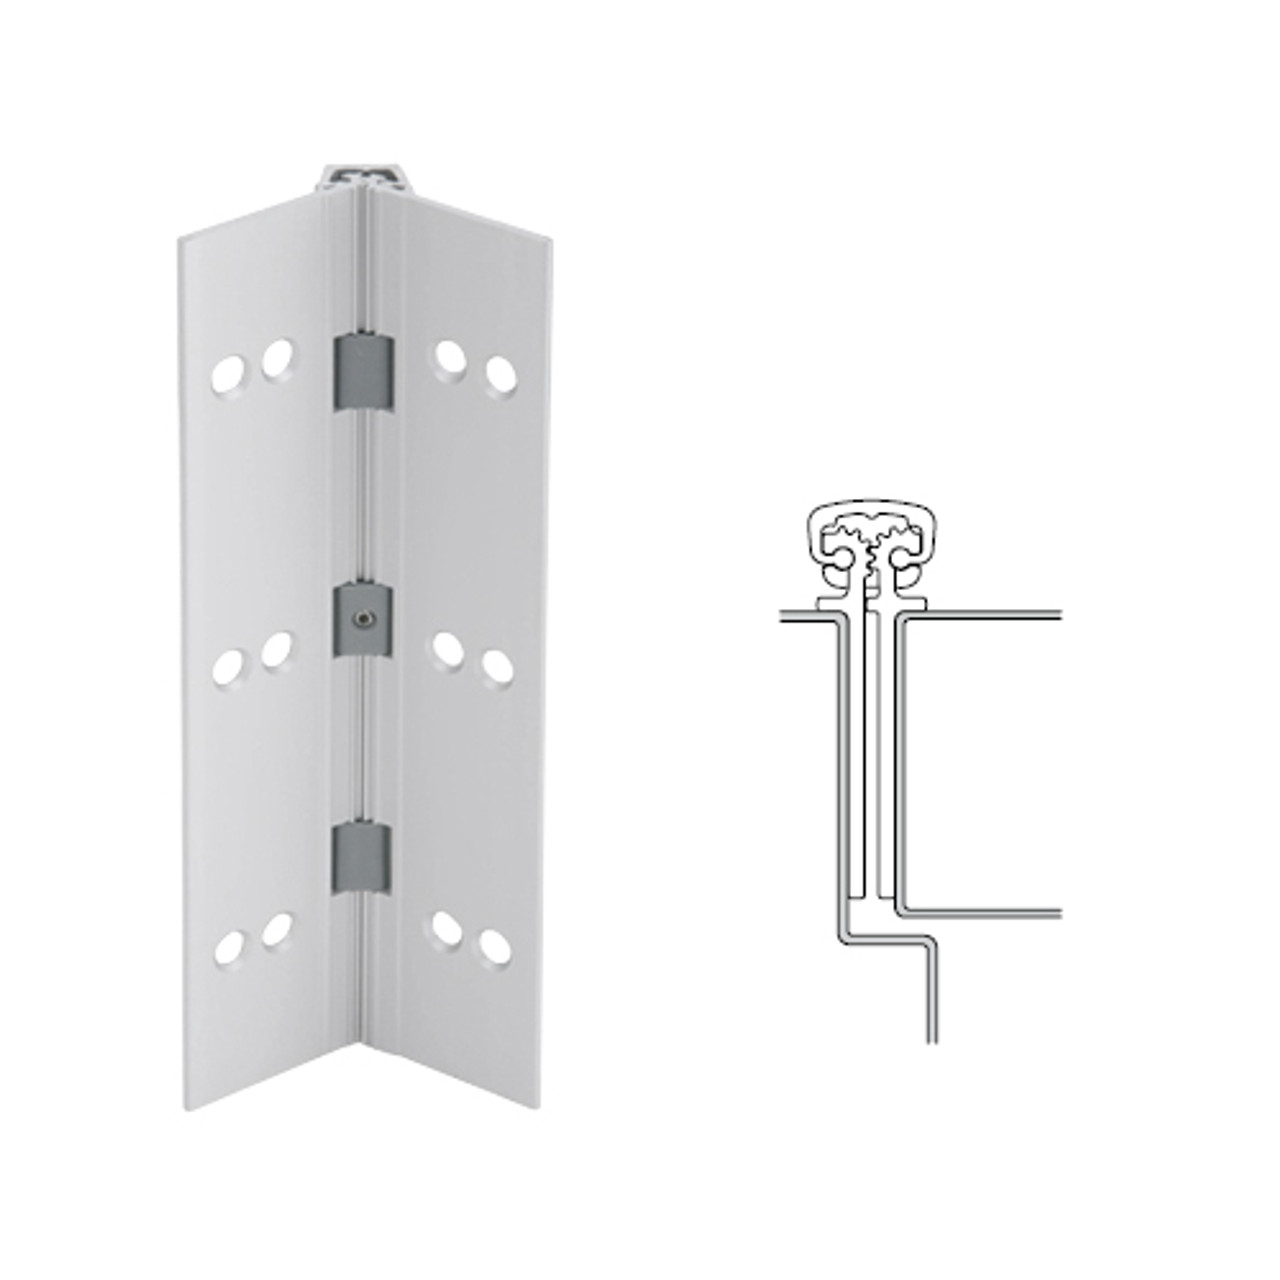 027XY-US28-95 IVES Full Mortise Continuous Geared Hinges in Satin Aluminum